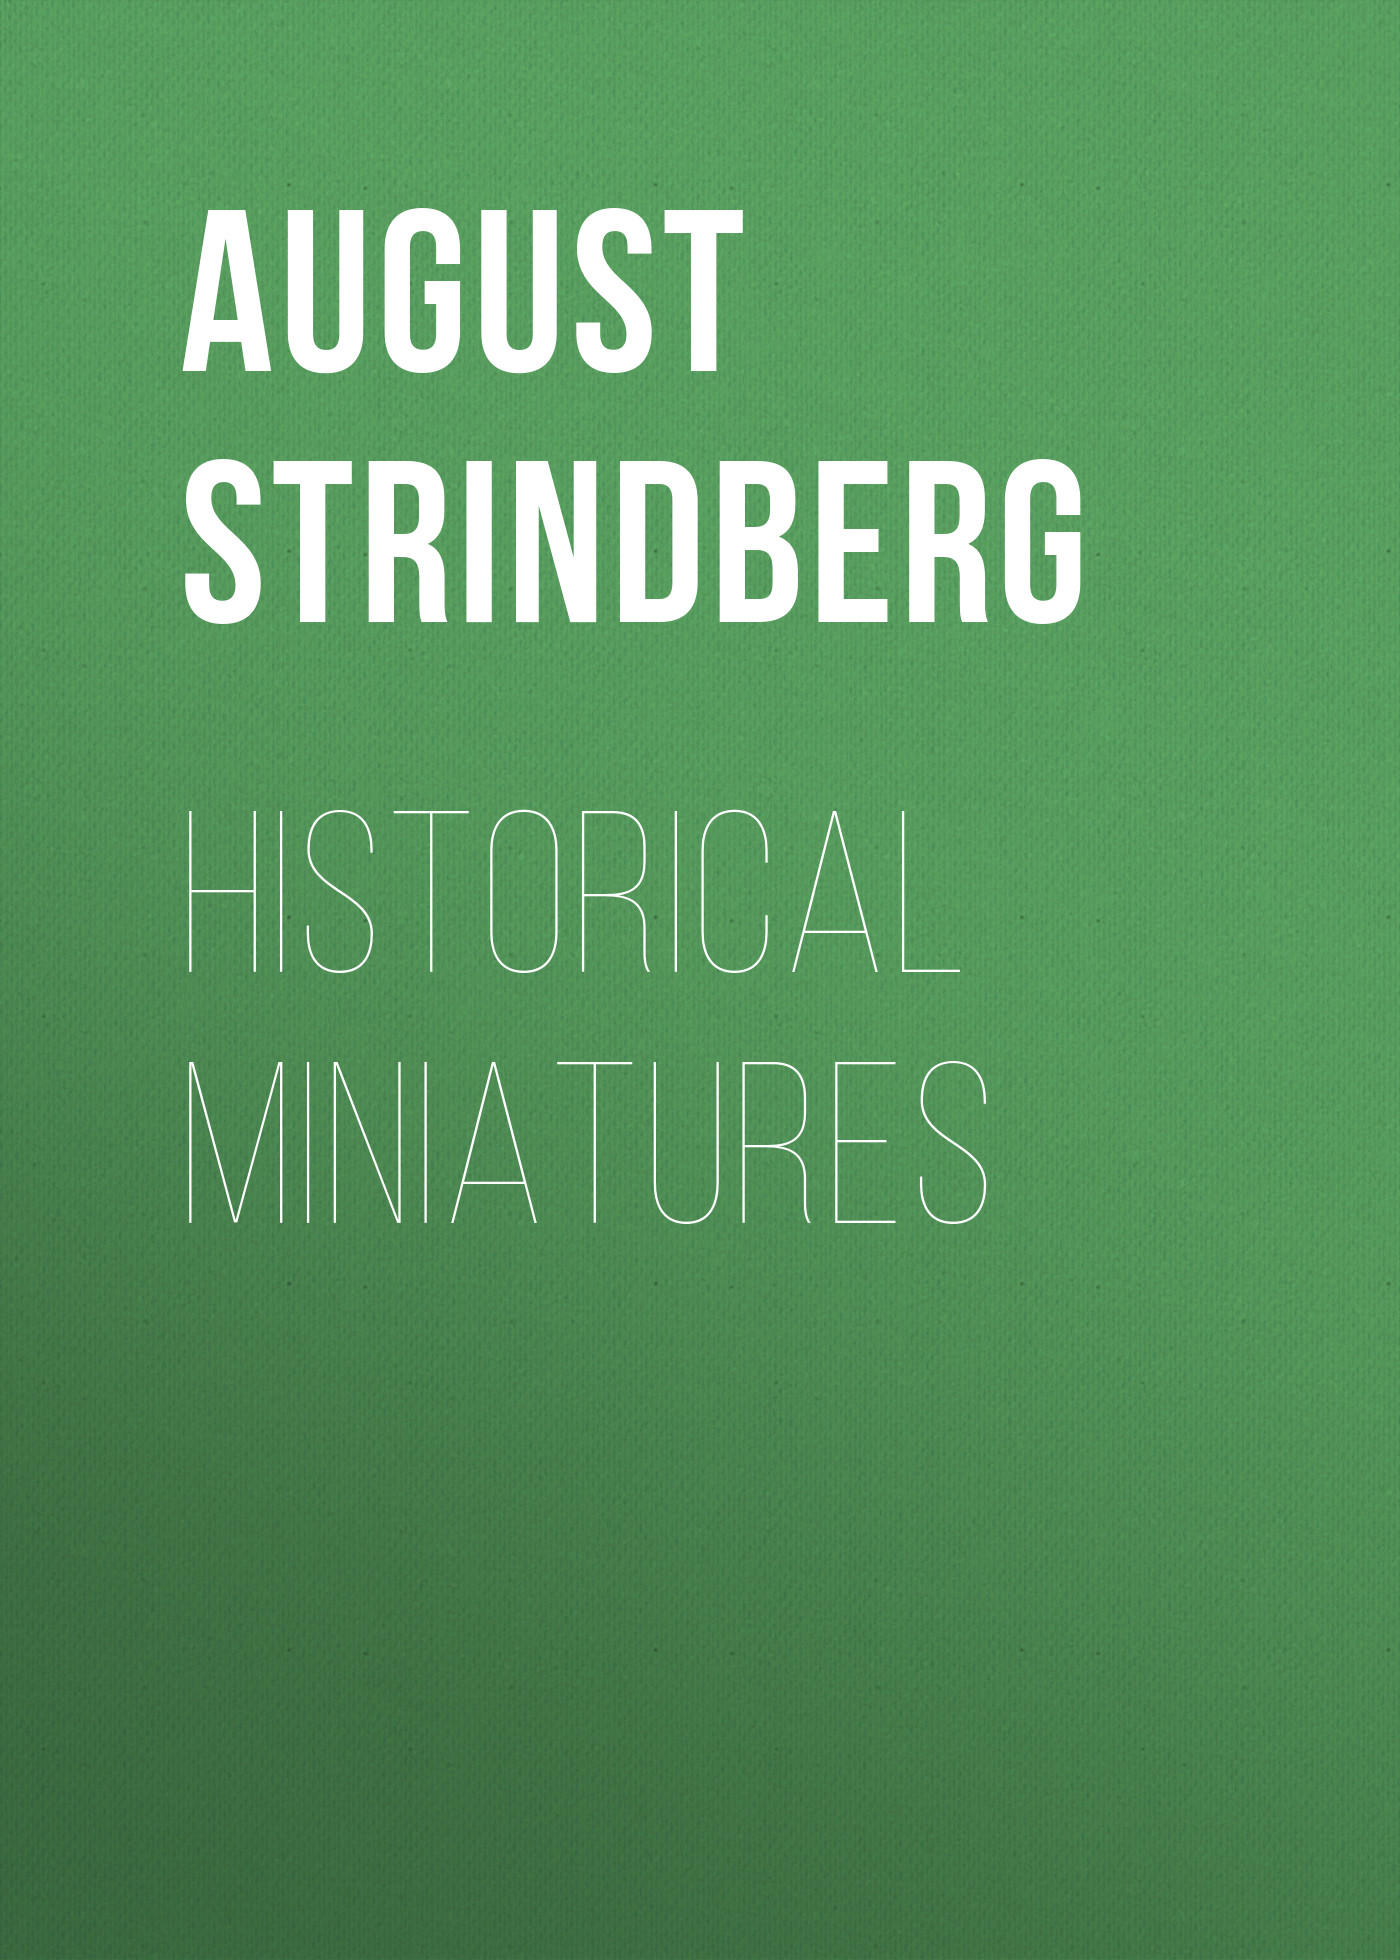 August Strindberg Historical Miniatures august johan strindberg inferno